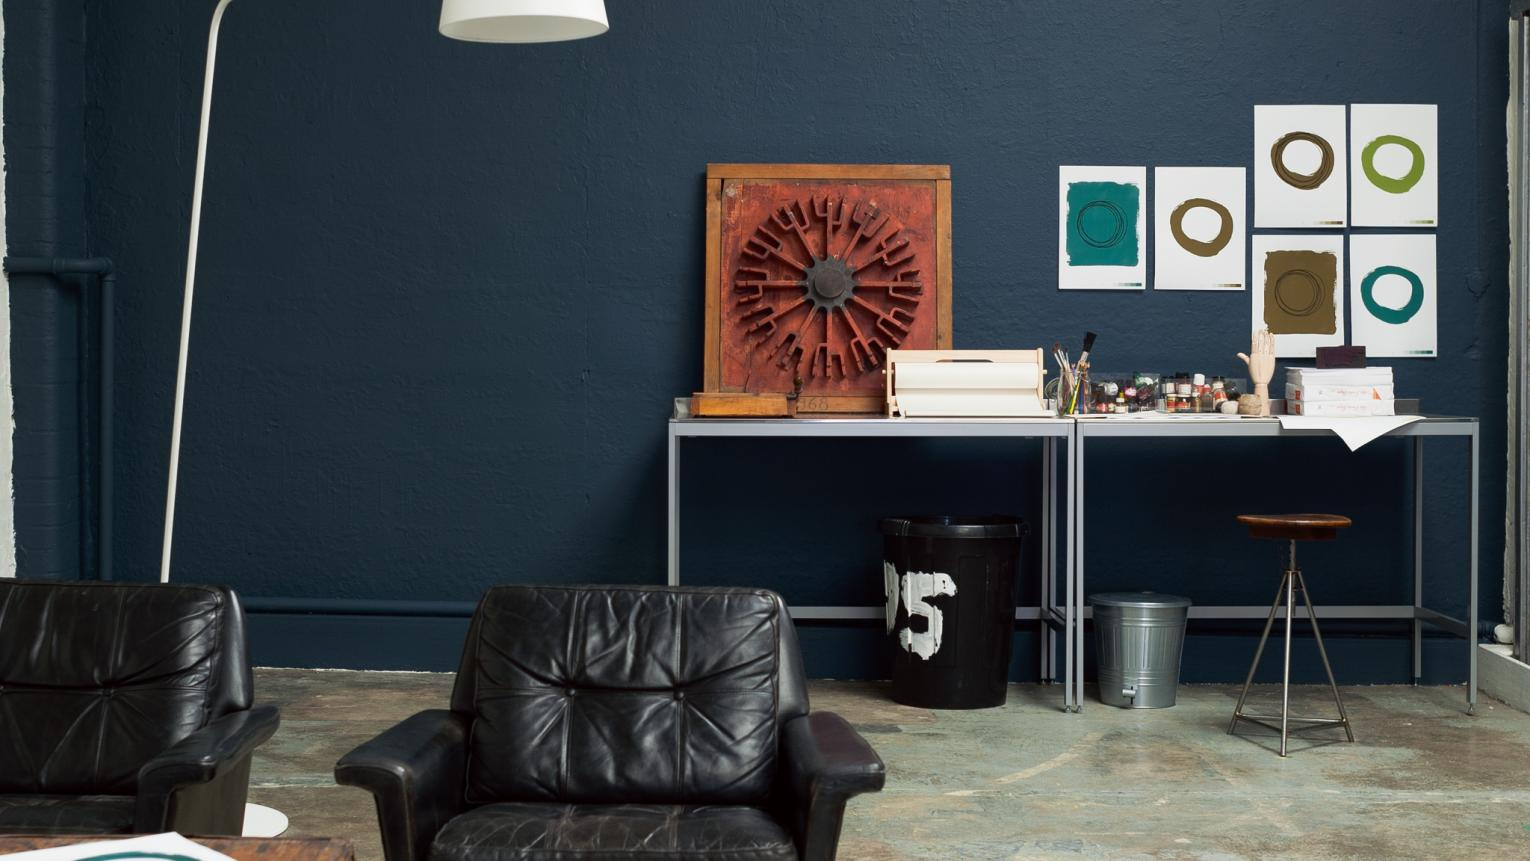 Use deep blue to create a soothing space that inspires creativity.